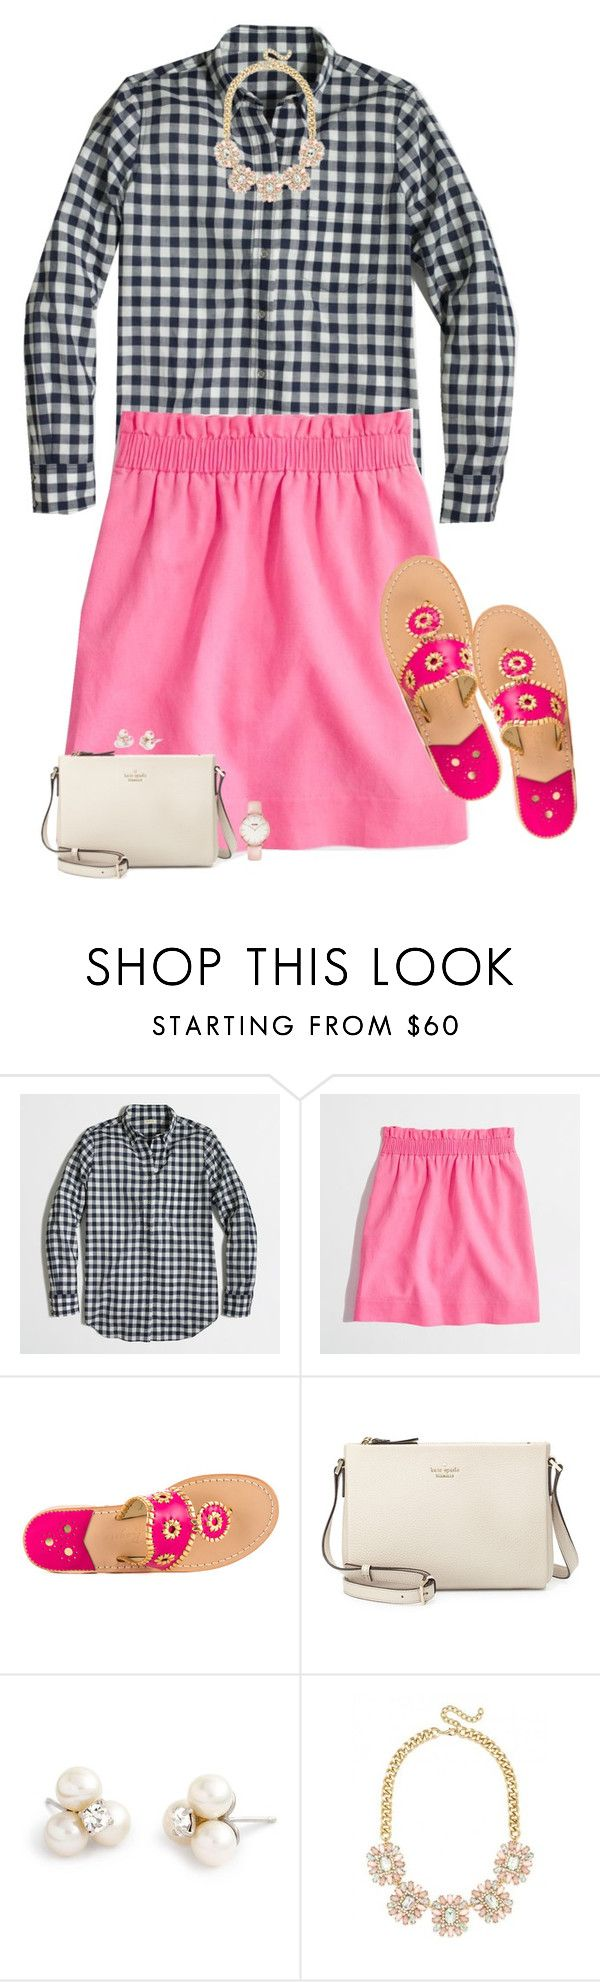 """Preppy J.Crew Outfit"" by sc-prep-girl on Polyvore featuring J.Crew, Jack Rogers, Kate Spade, CLUSE and miniskirts"